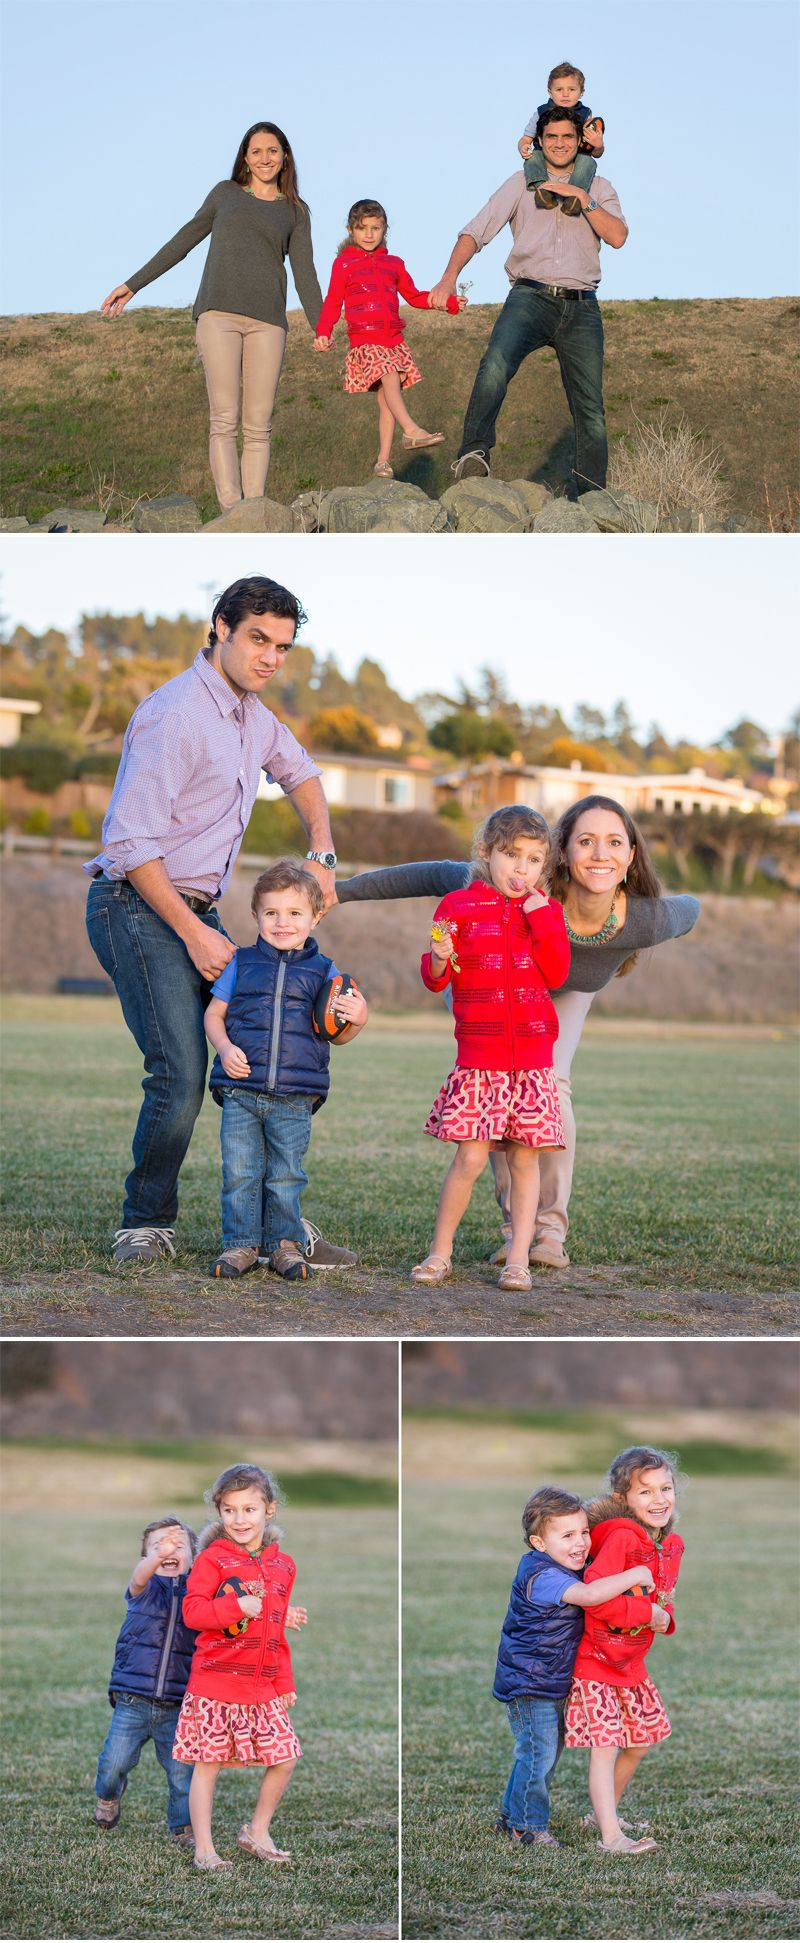 a fun family photo | Family Portrait Session | Marin, CA (Cole and Kiera Photography)